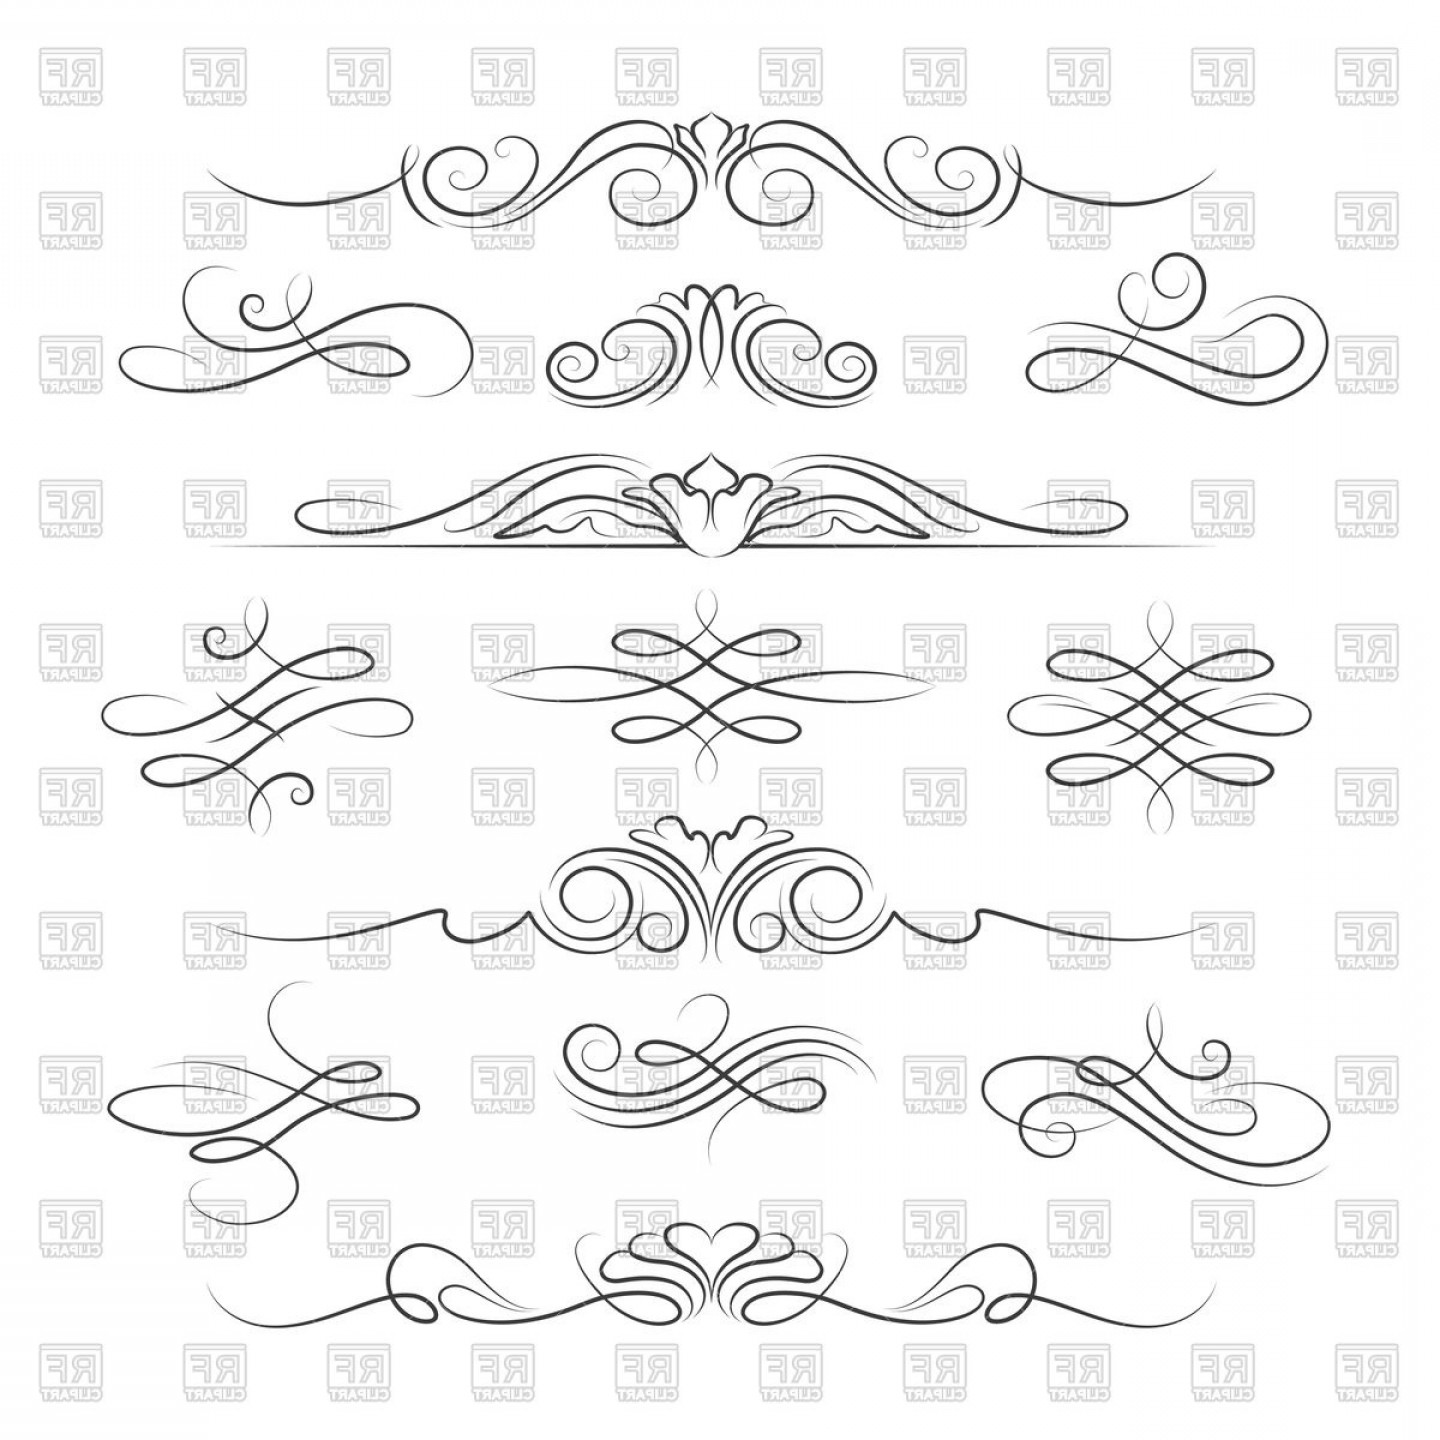 All Curvey Line Art Vector Free Download: Set Of Vintage Decoration Elements With Swirl And Curve Vector Clipart